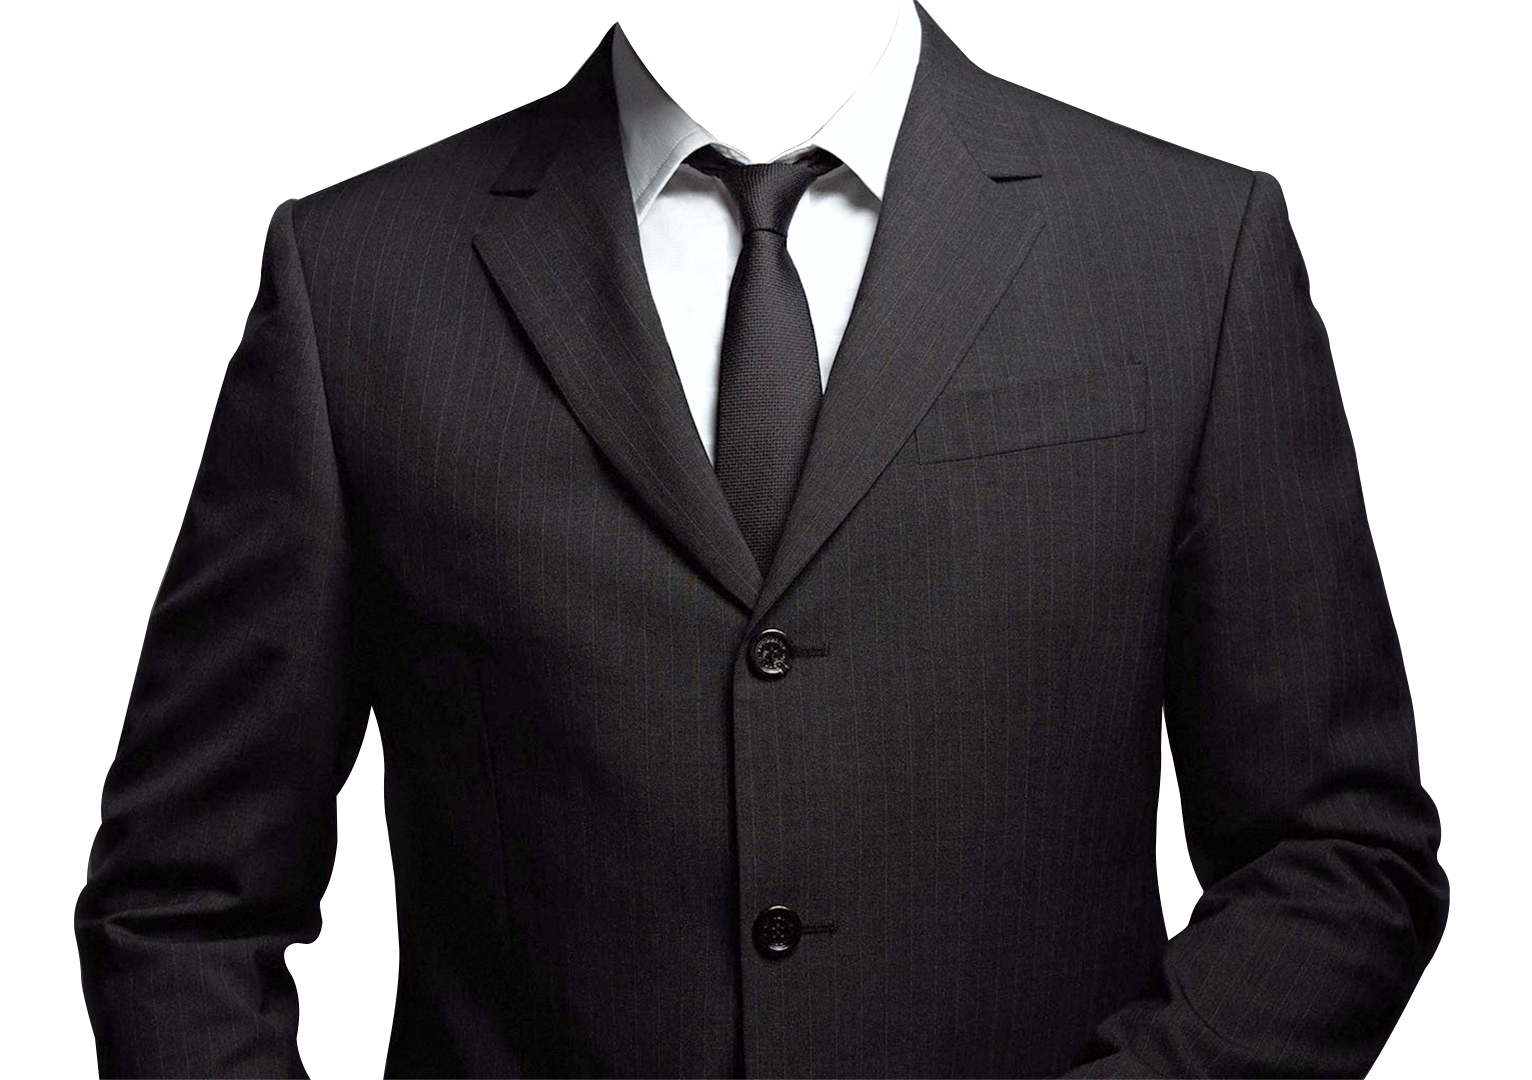 Suit png. Transparent images pluspng image